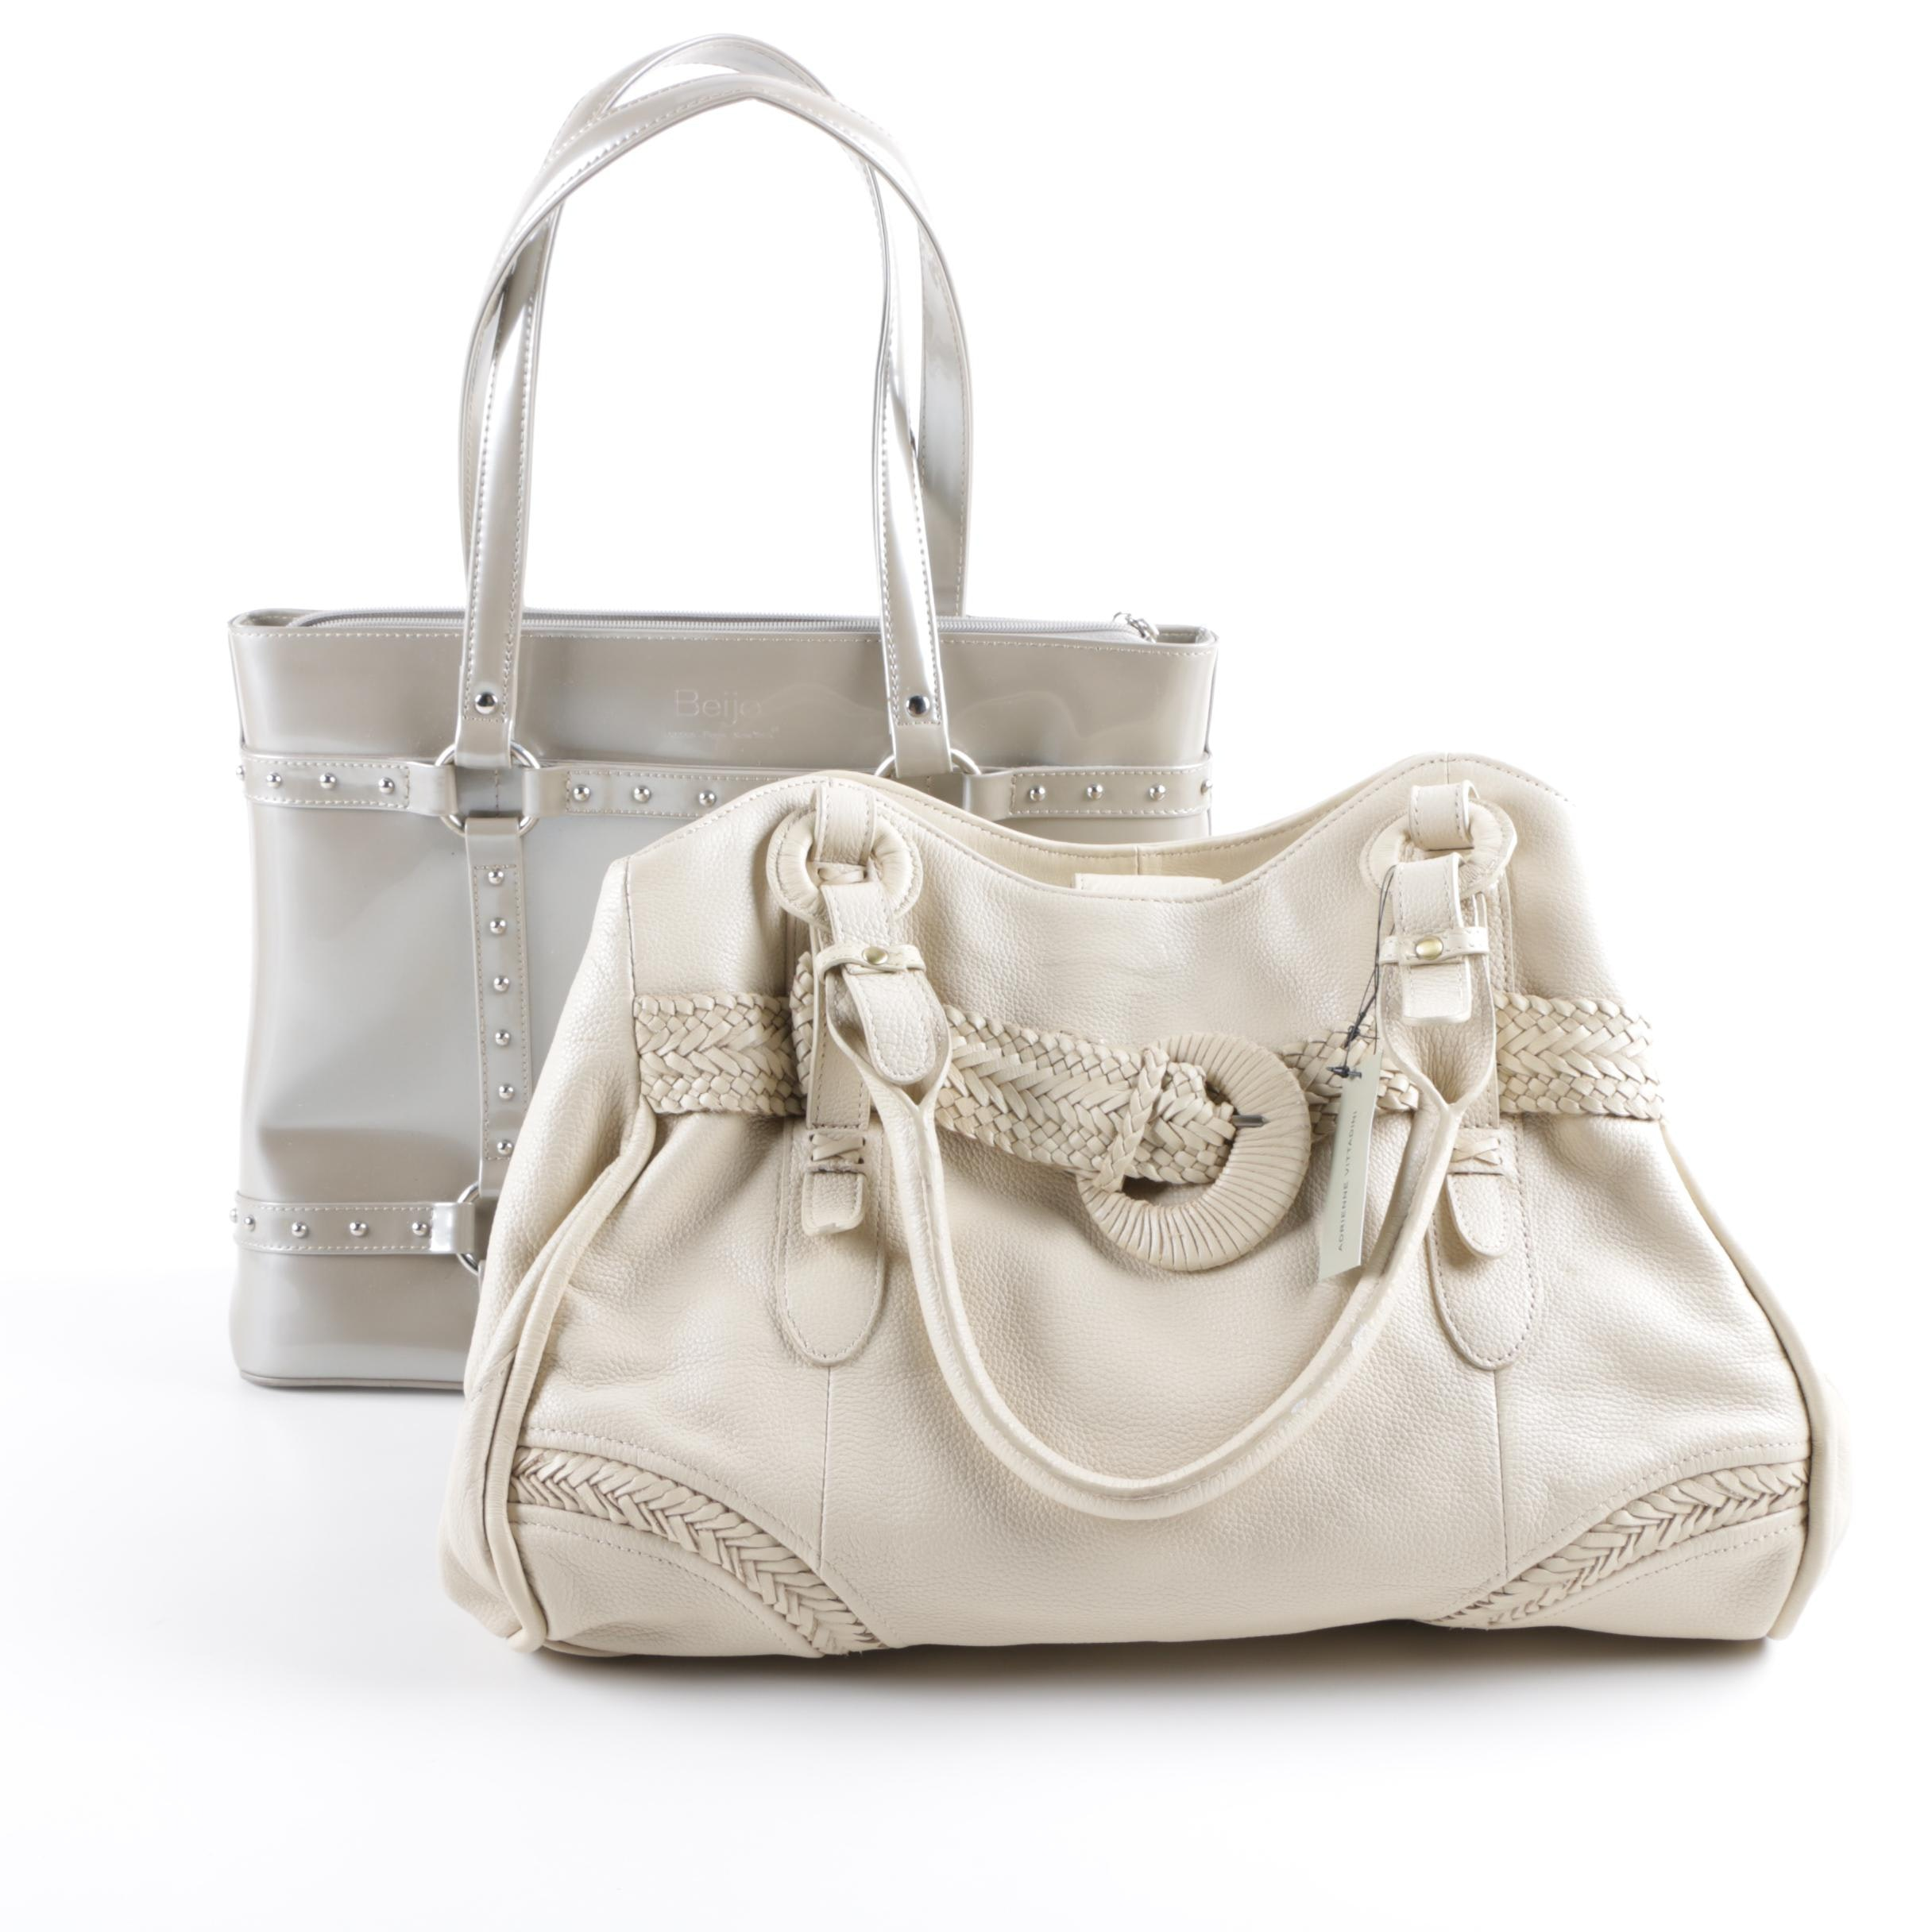 Adrienne Vittadini Hobo Bag and Beijo Tote Bag